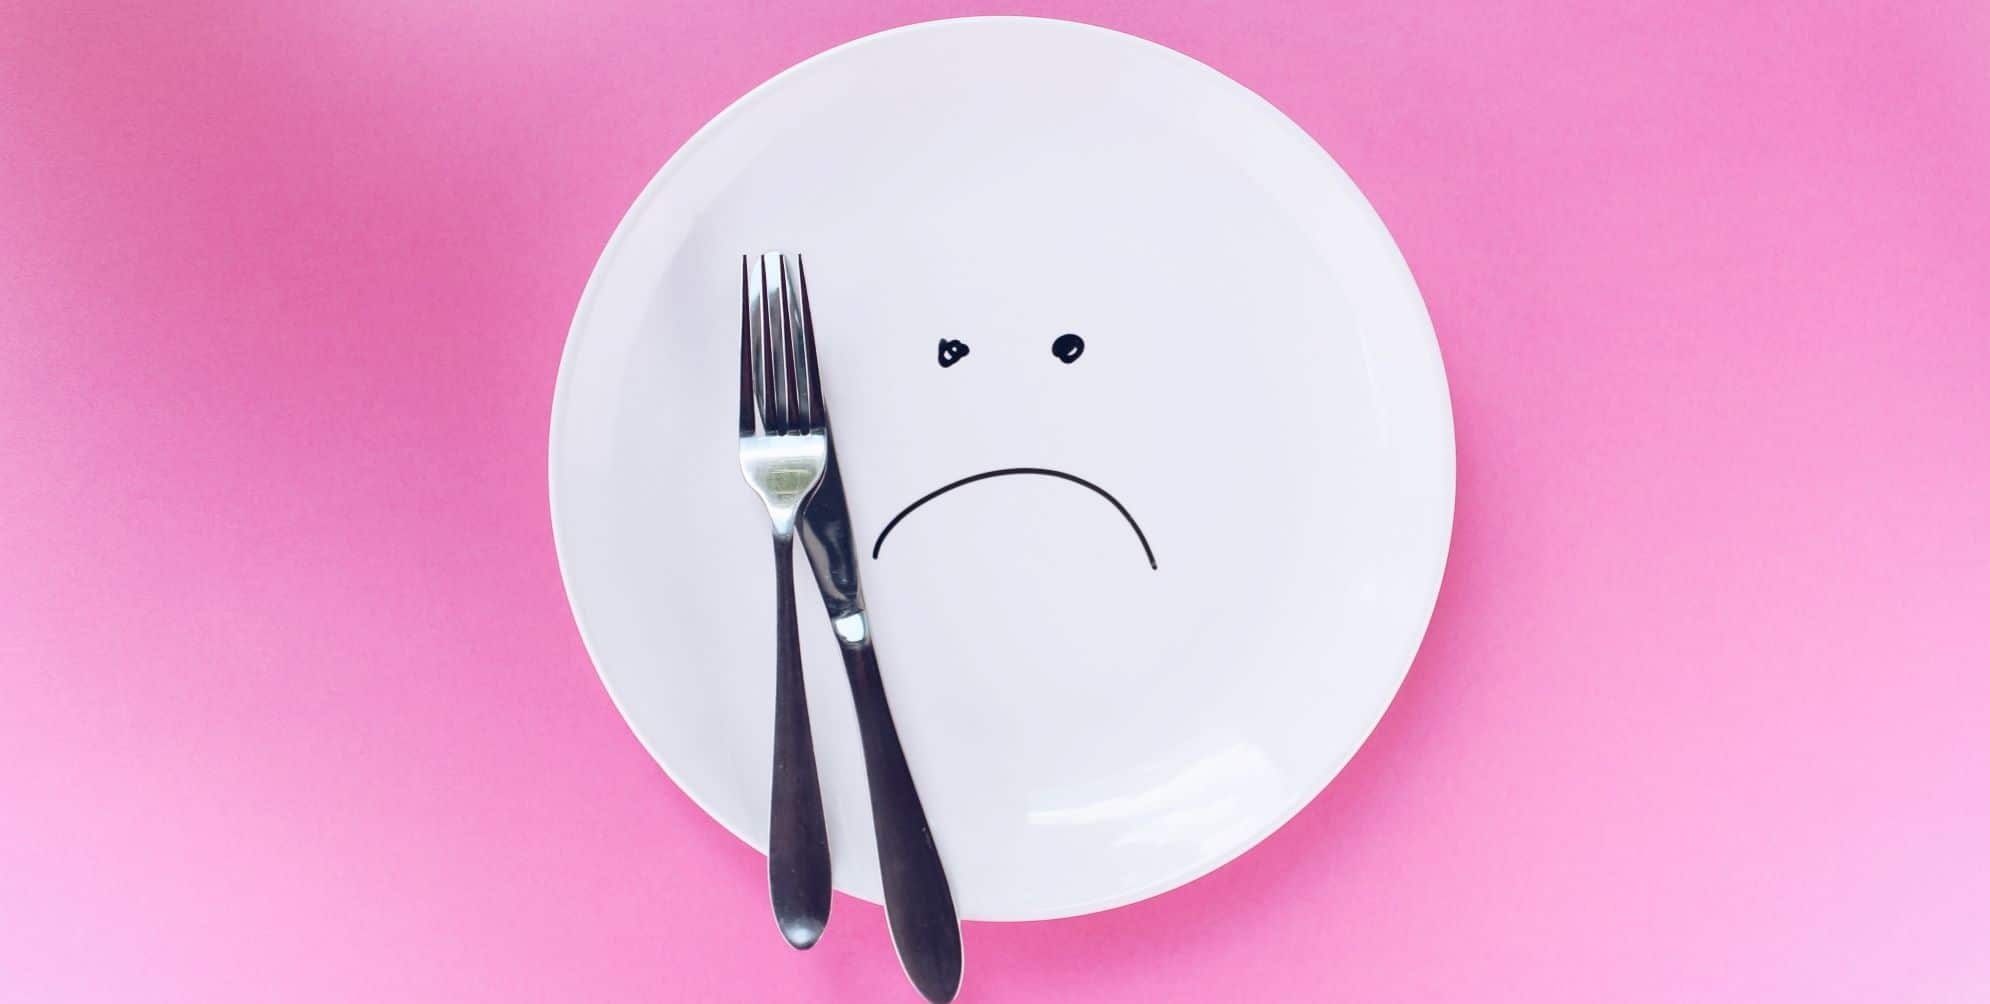 white plate on pink backgorund with knife and fork. Plate has an unhappy face on it :(